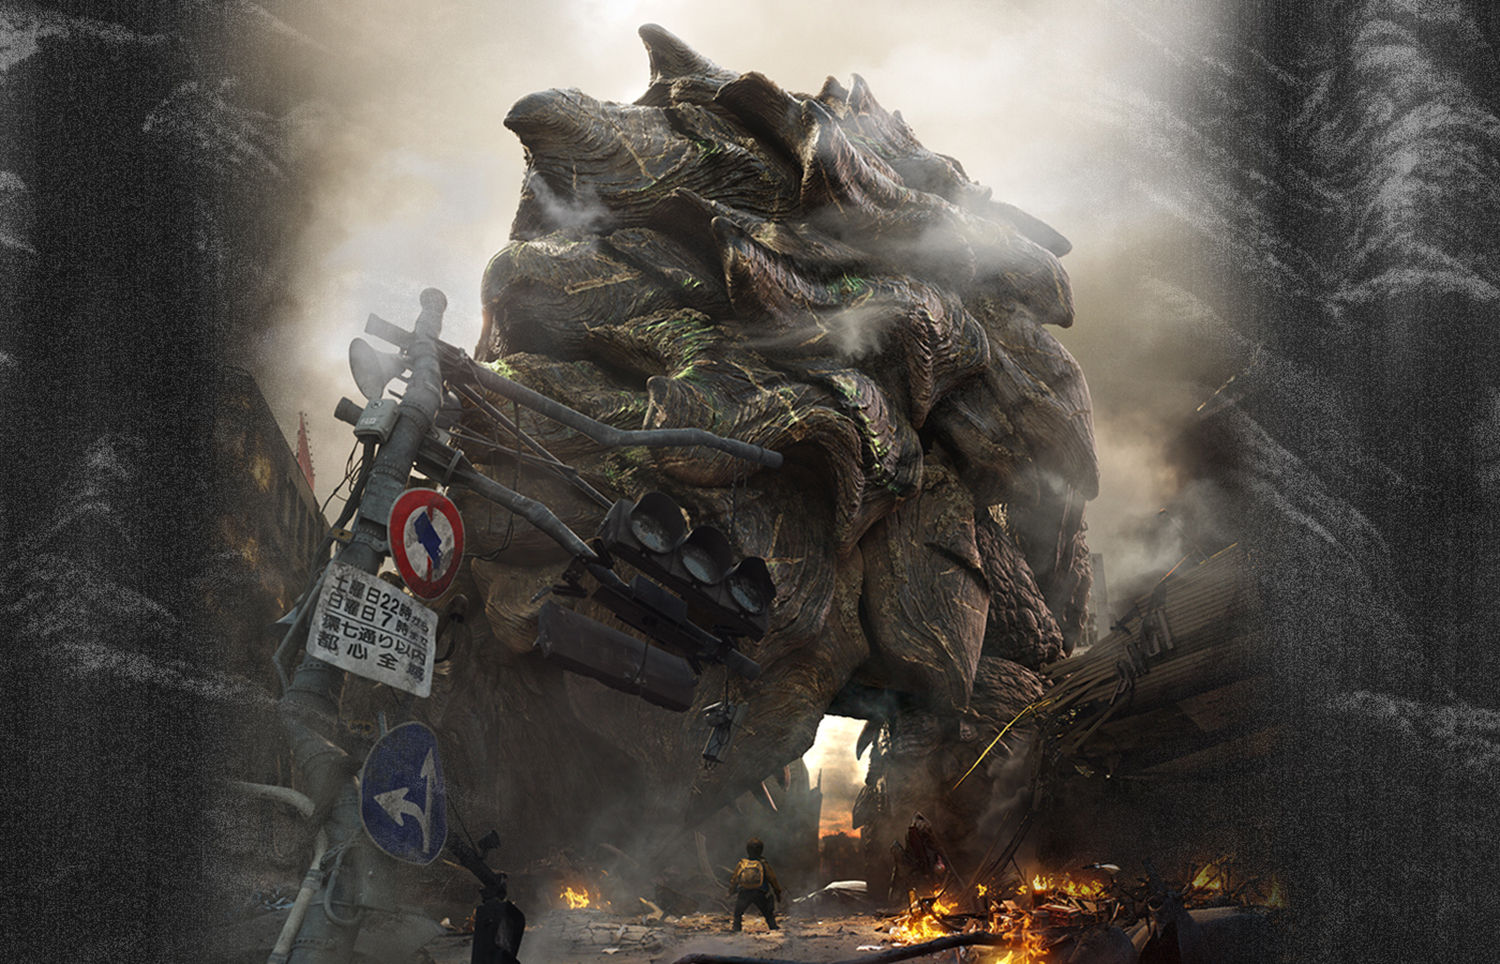 gamera, big giant thing, running away, movie